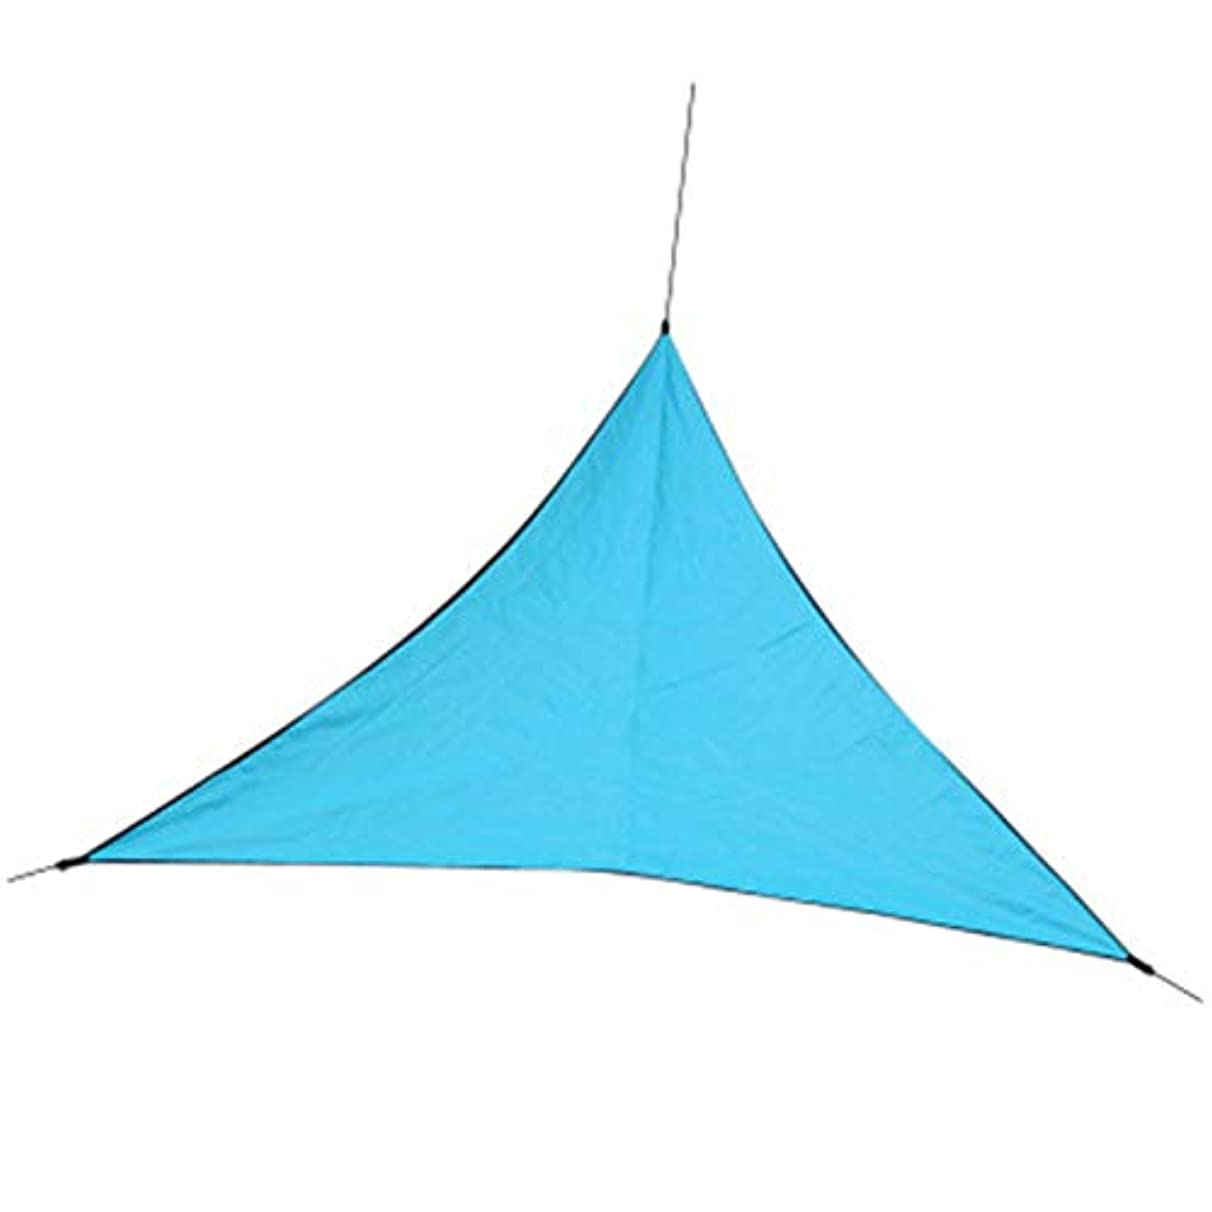 Nrpfell Outdoor Sun Shelter Waterproof Awning Triple-cornered Tent Canopy Garden Beach Picnic Camp Shade Tarp Travel Awning Sun Shade Gazebo Orange